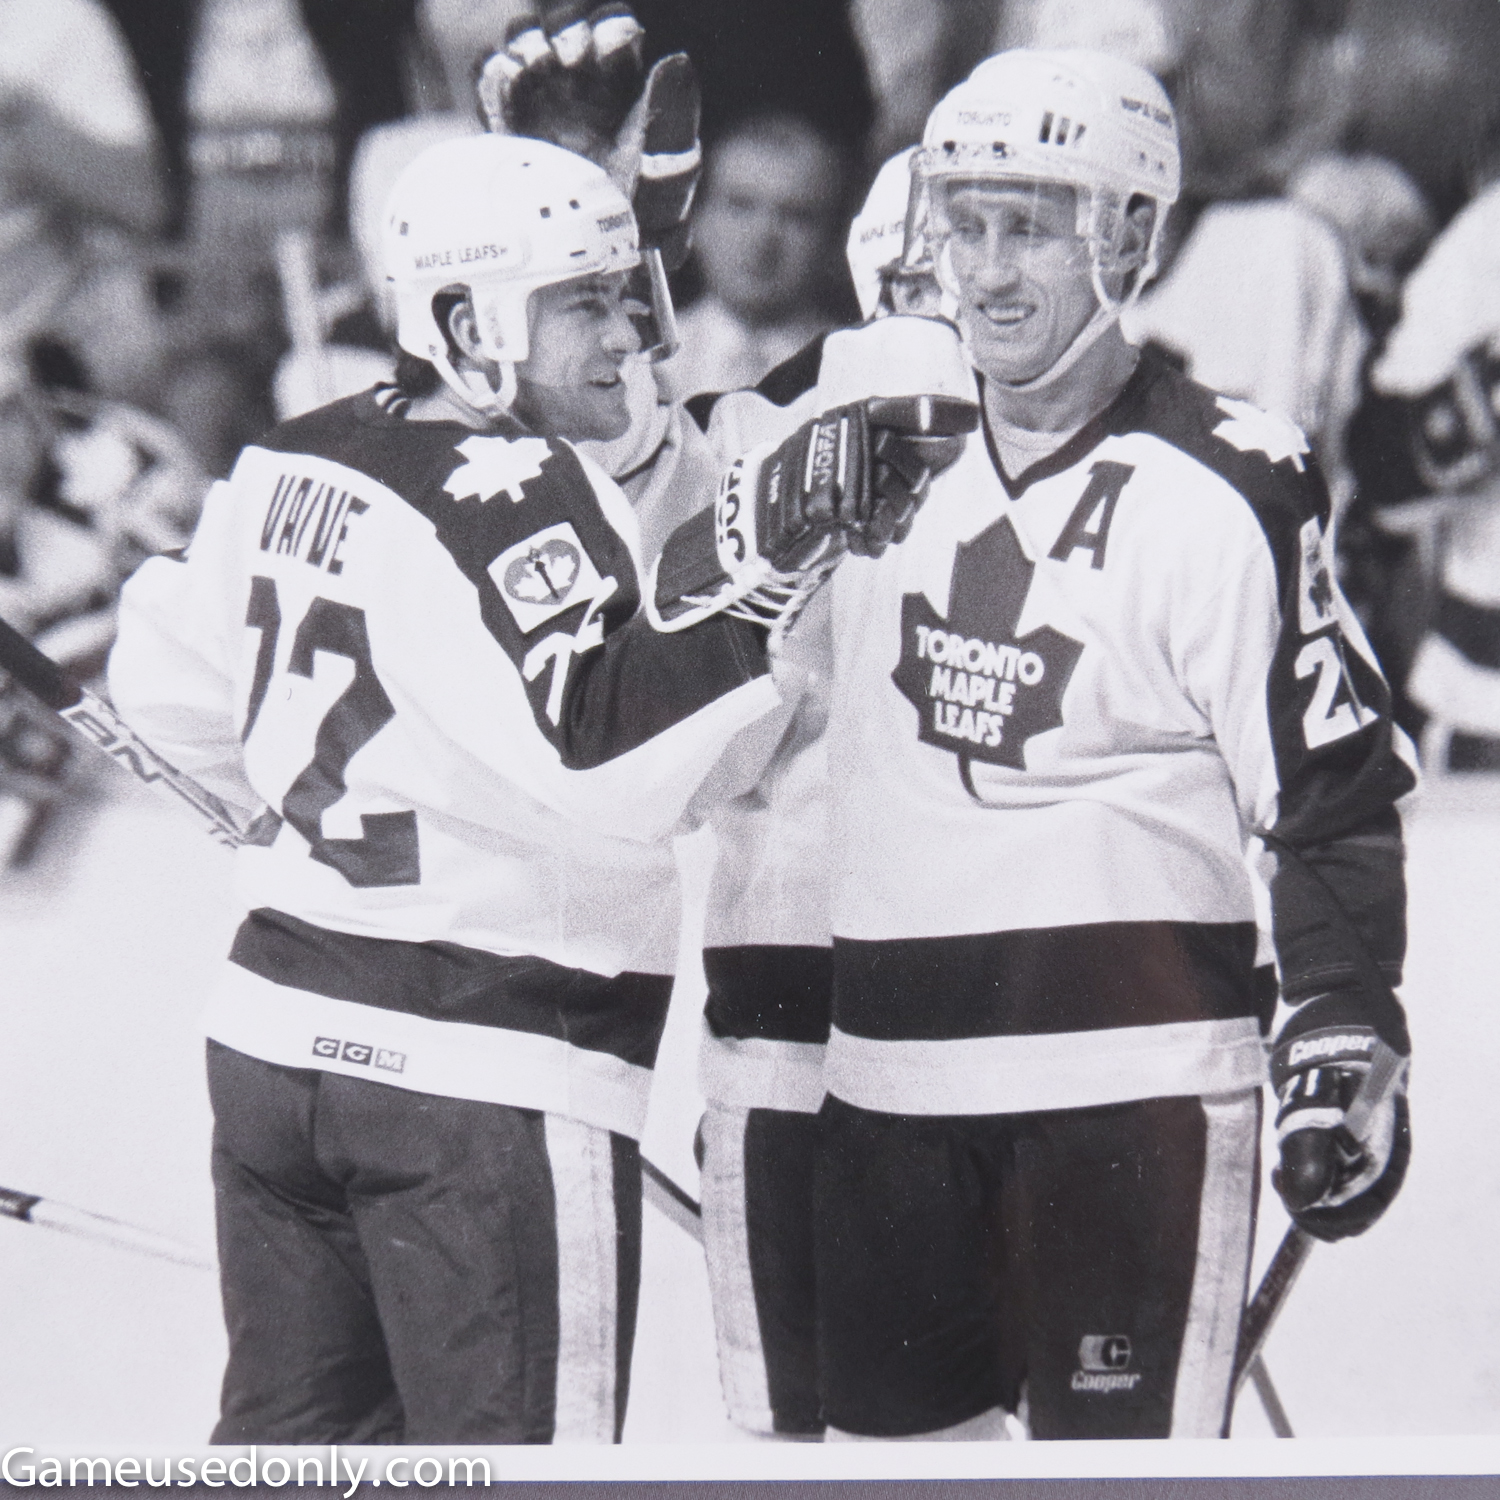 Rick-Vaive-Photo-Matched-Jersey-1987-Maple-Leaf-Gardens-Borje-Salming